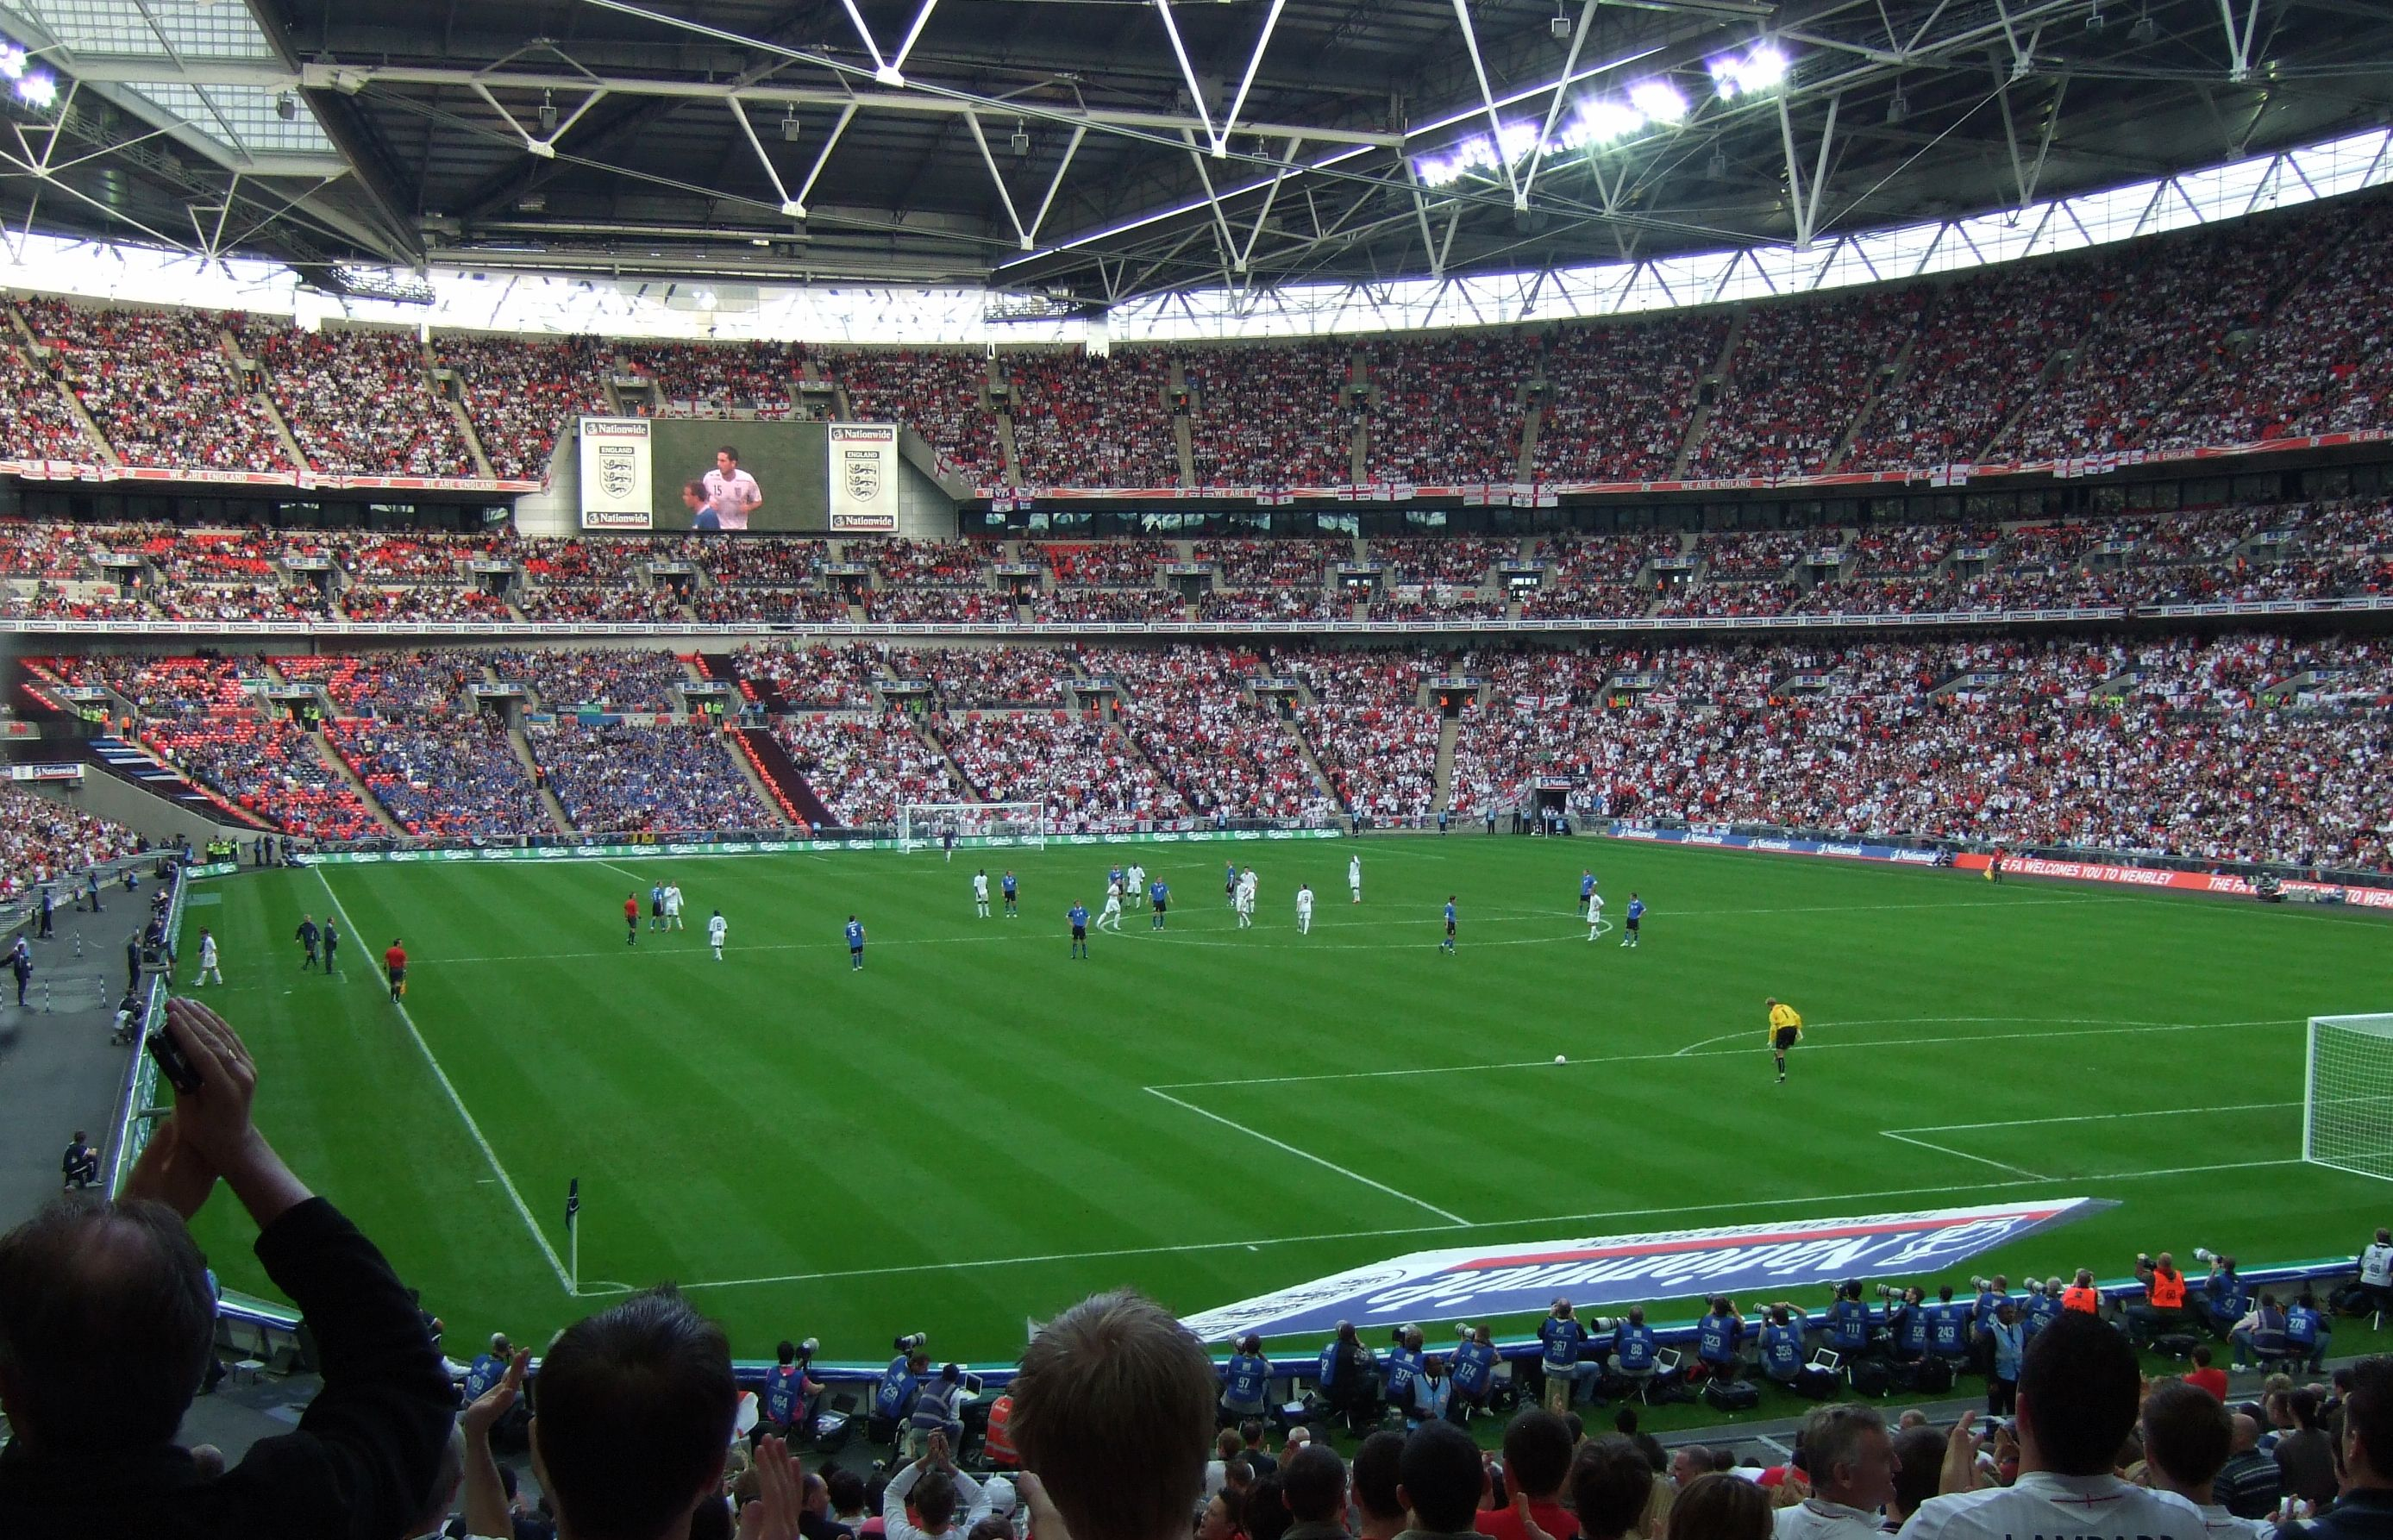 This Picture Above Shows One Of The Most Enjoyed And Played Sport In England Futbol Or As What Americans Refer To As Soccer Many People Play This Sport Or Go